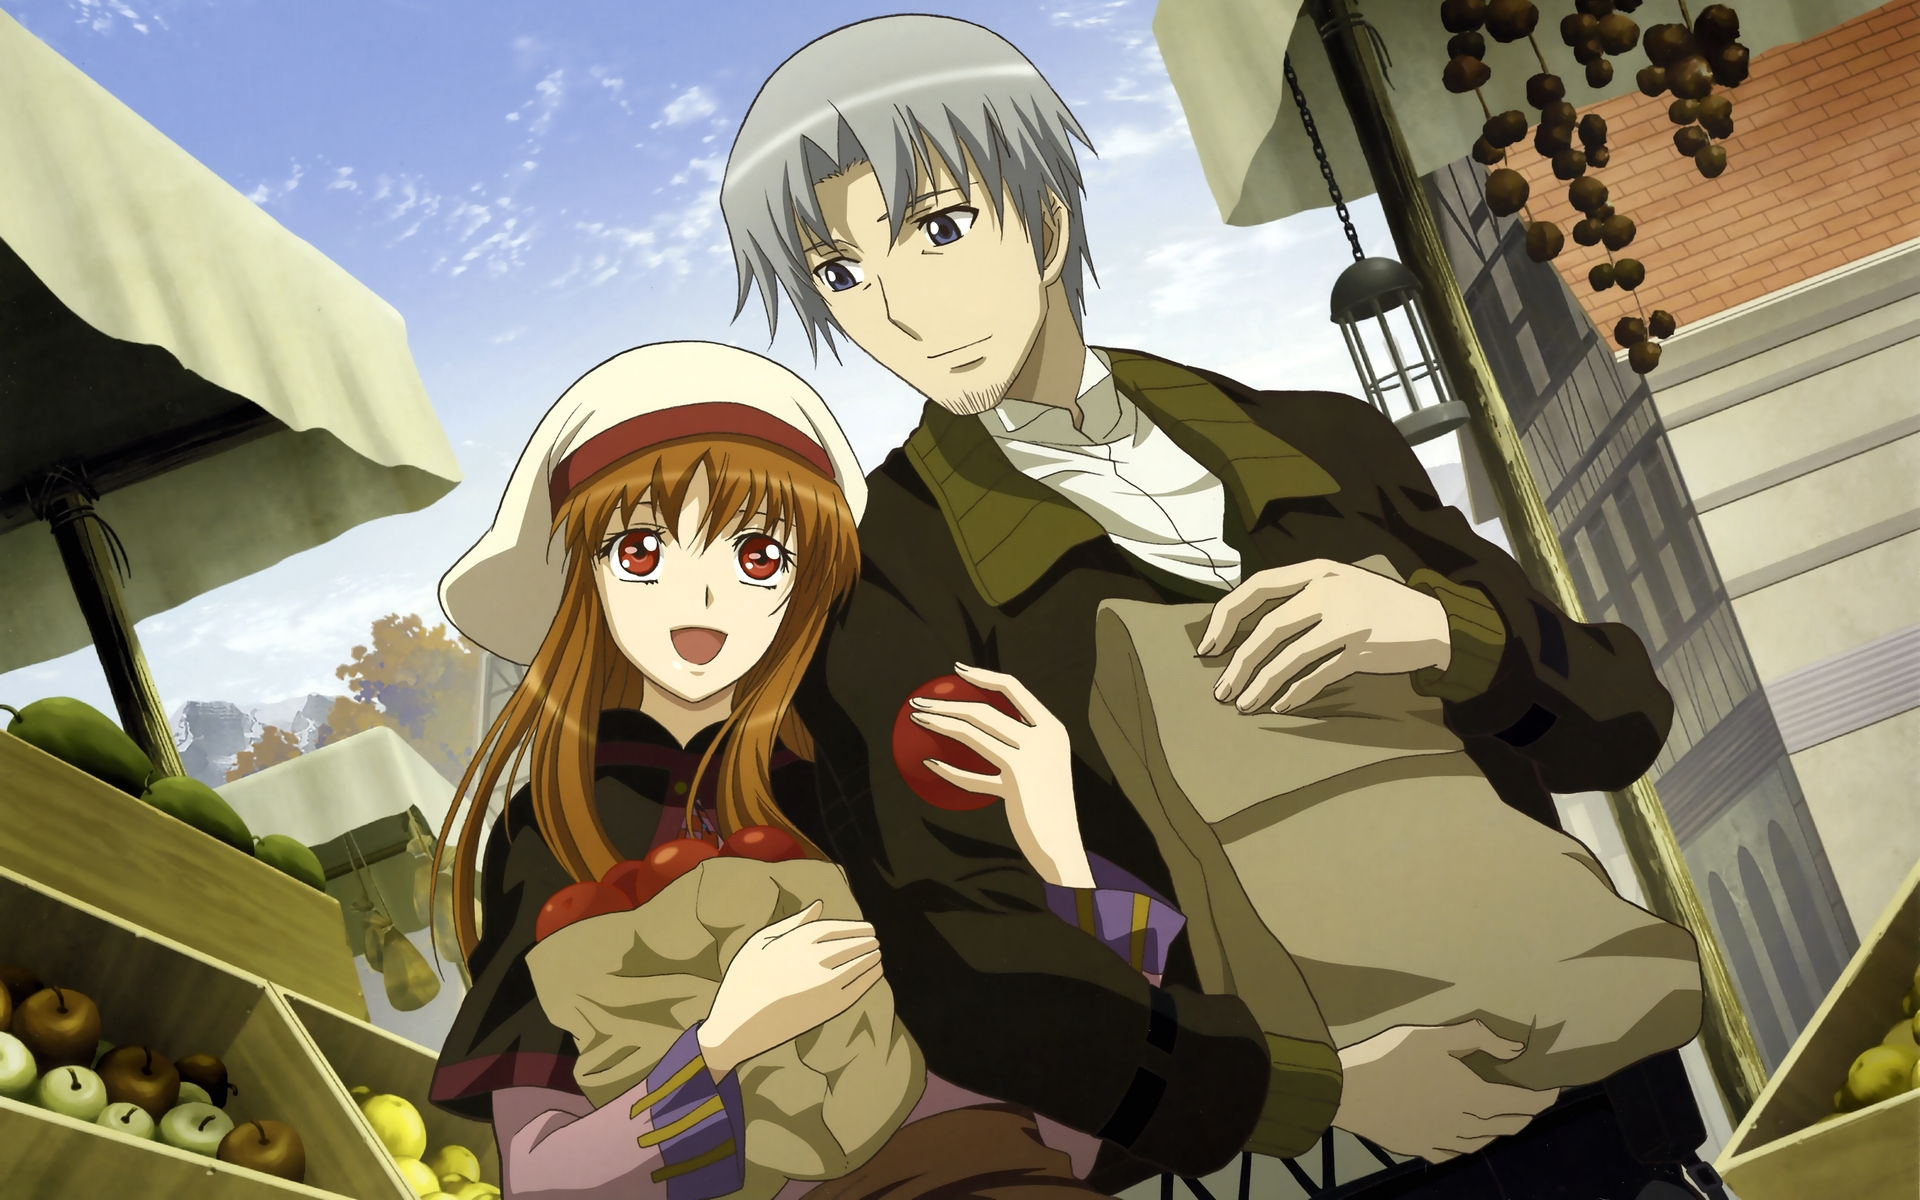 Animal Review, Fav Animal, Spice And Wolf, Wolf Character, Favorite Animal, Animal Couple, Crafts, Kraft Lawrence, Spices And Wolf